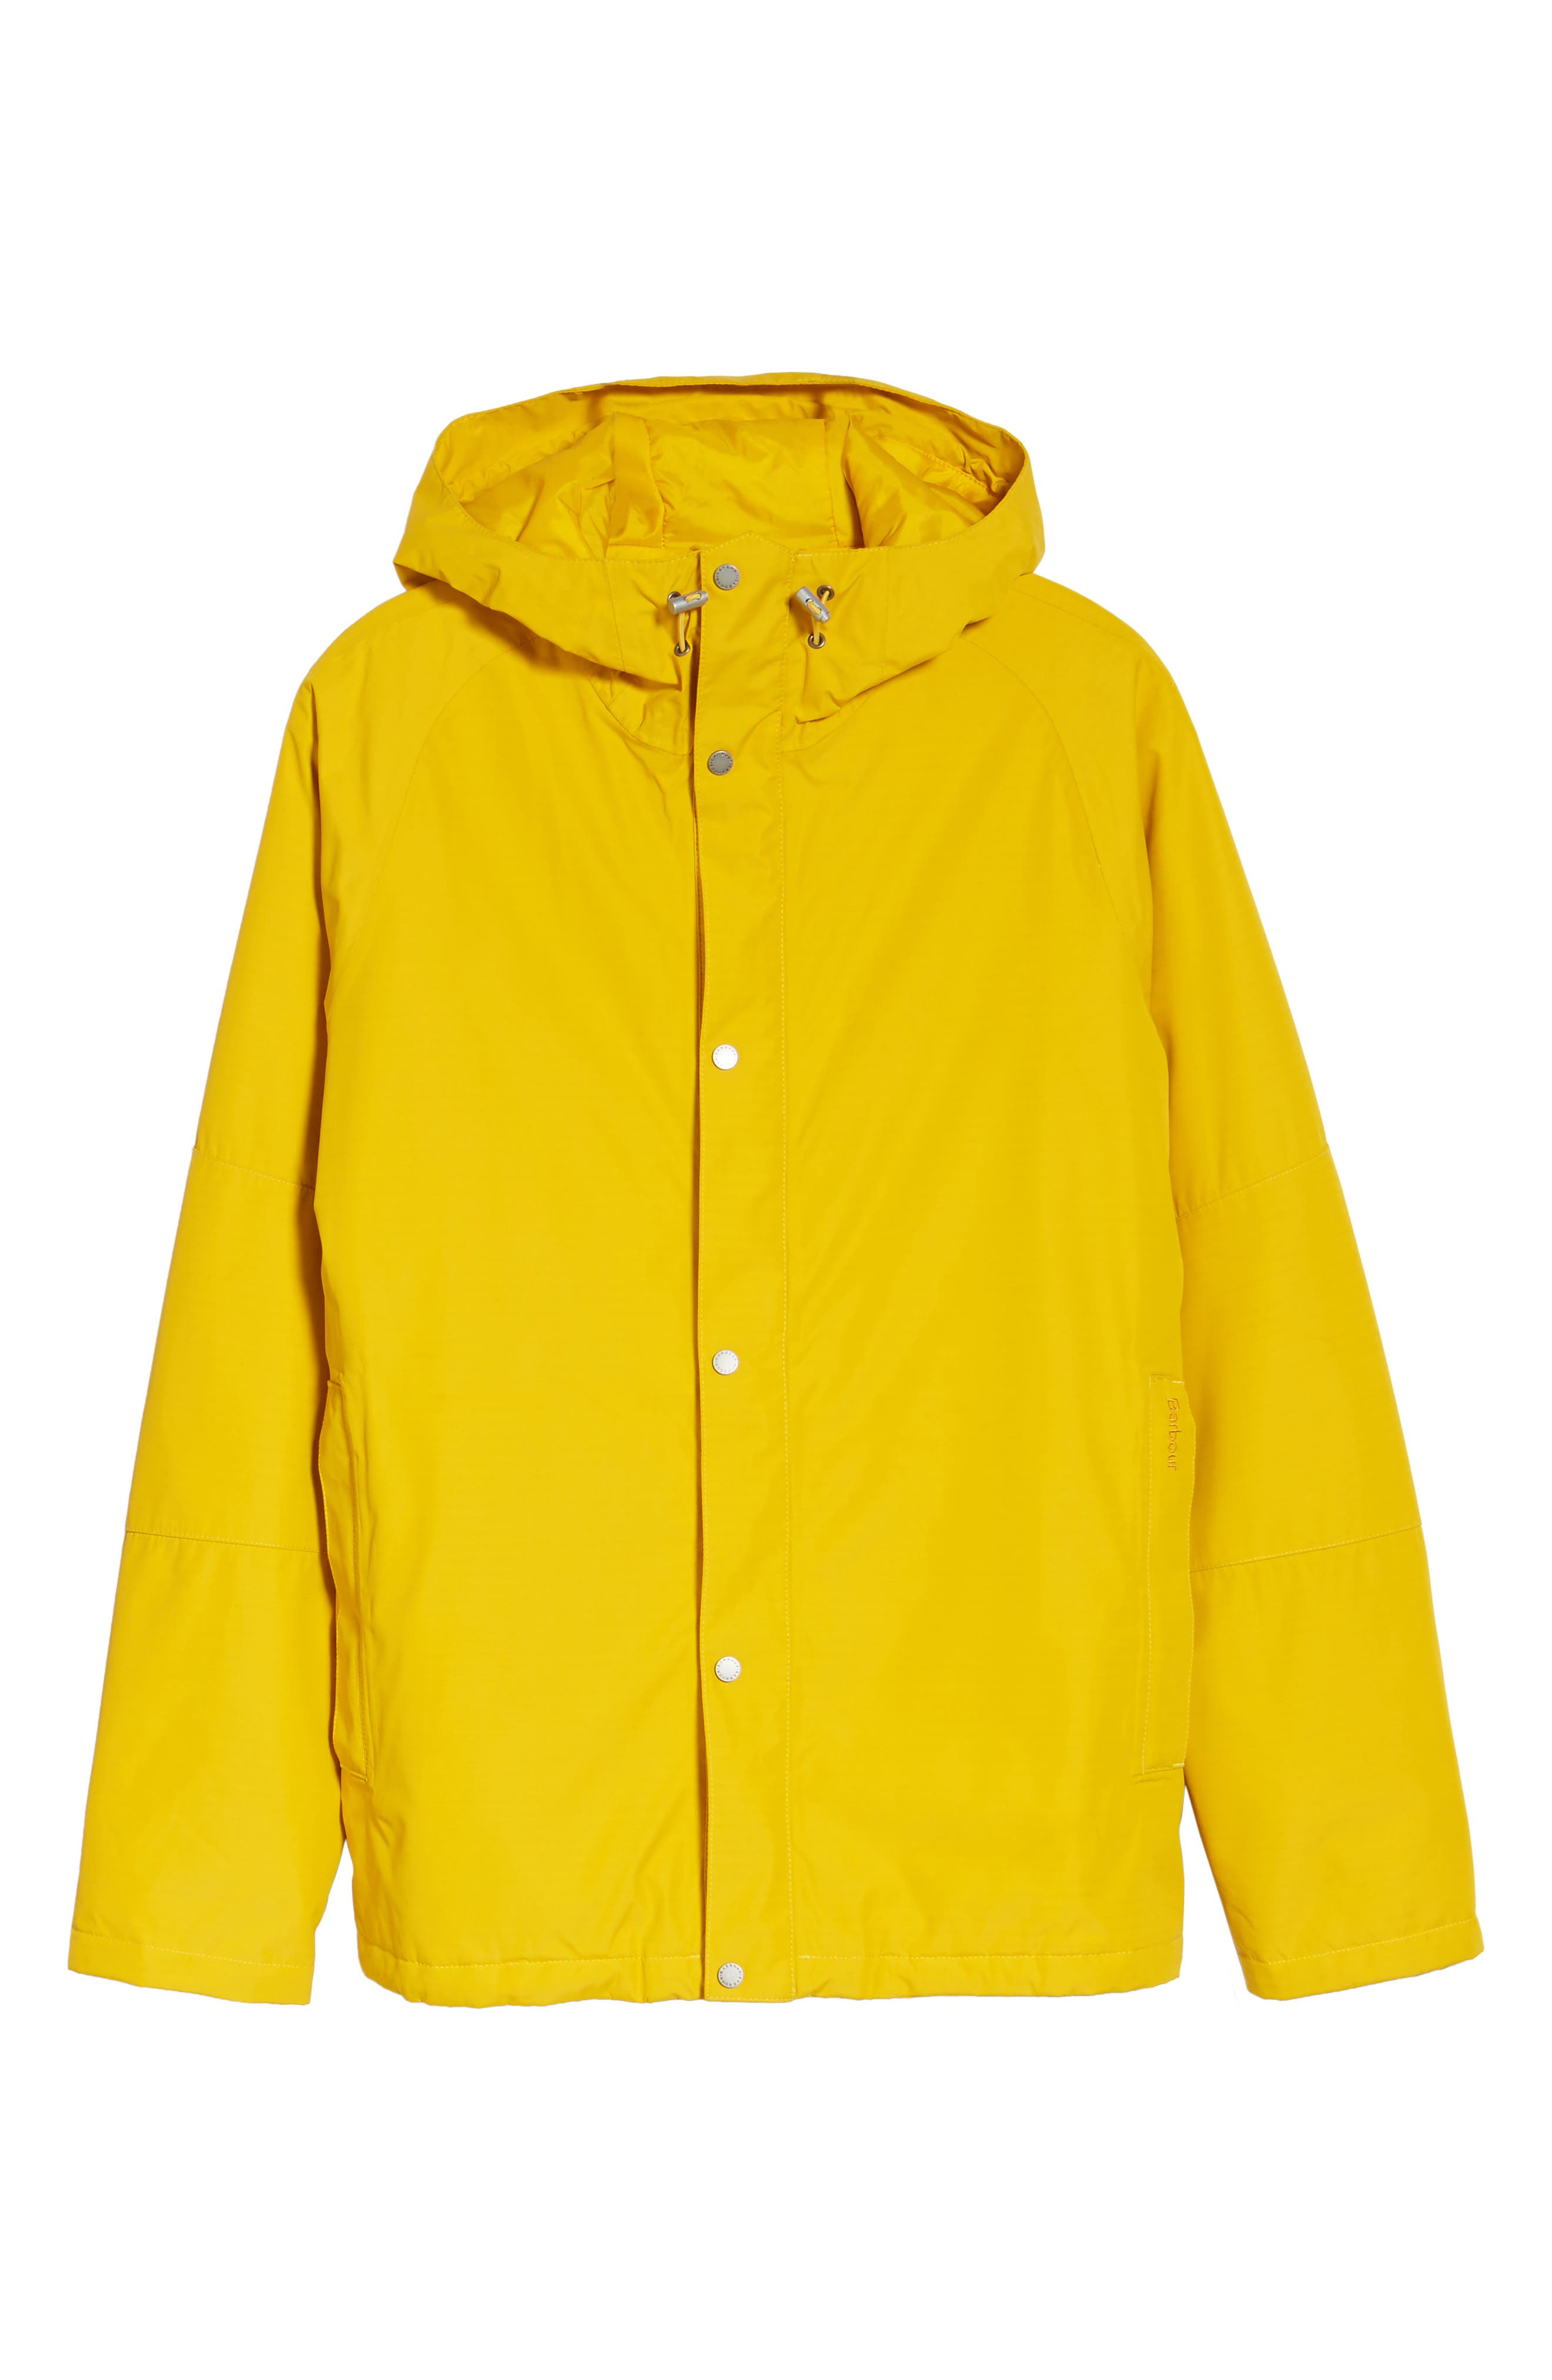 Rydal Waterproof Hooded Jacket,                             Alternate thumbnail 6, color,                             Canary Yellow